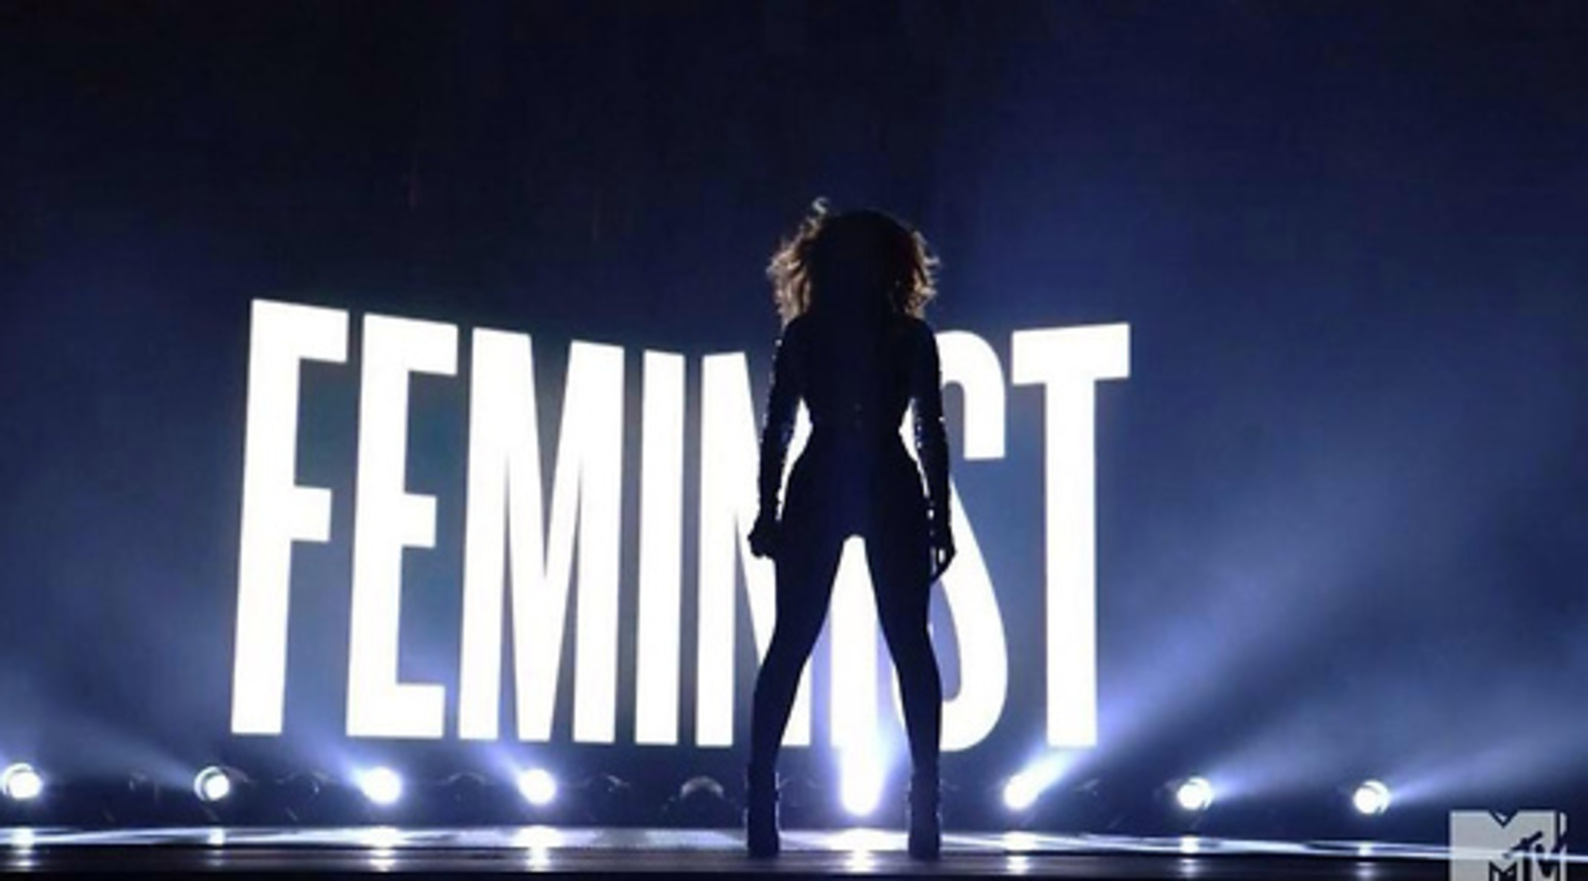 debating: this house believes that beyoncé is a positive force for the feminist movement;